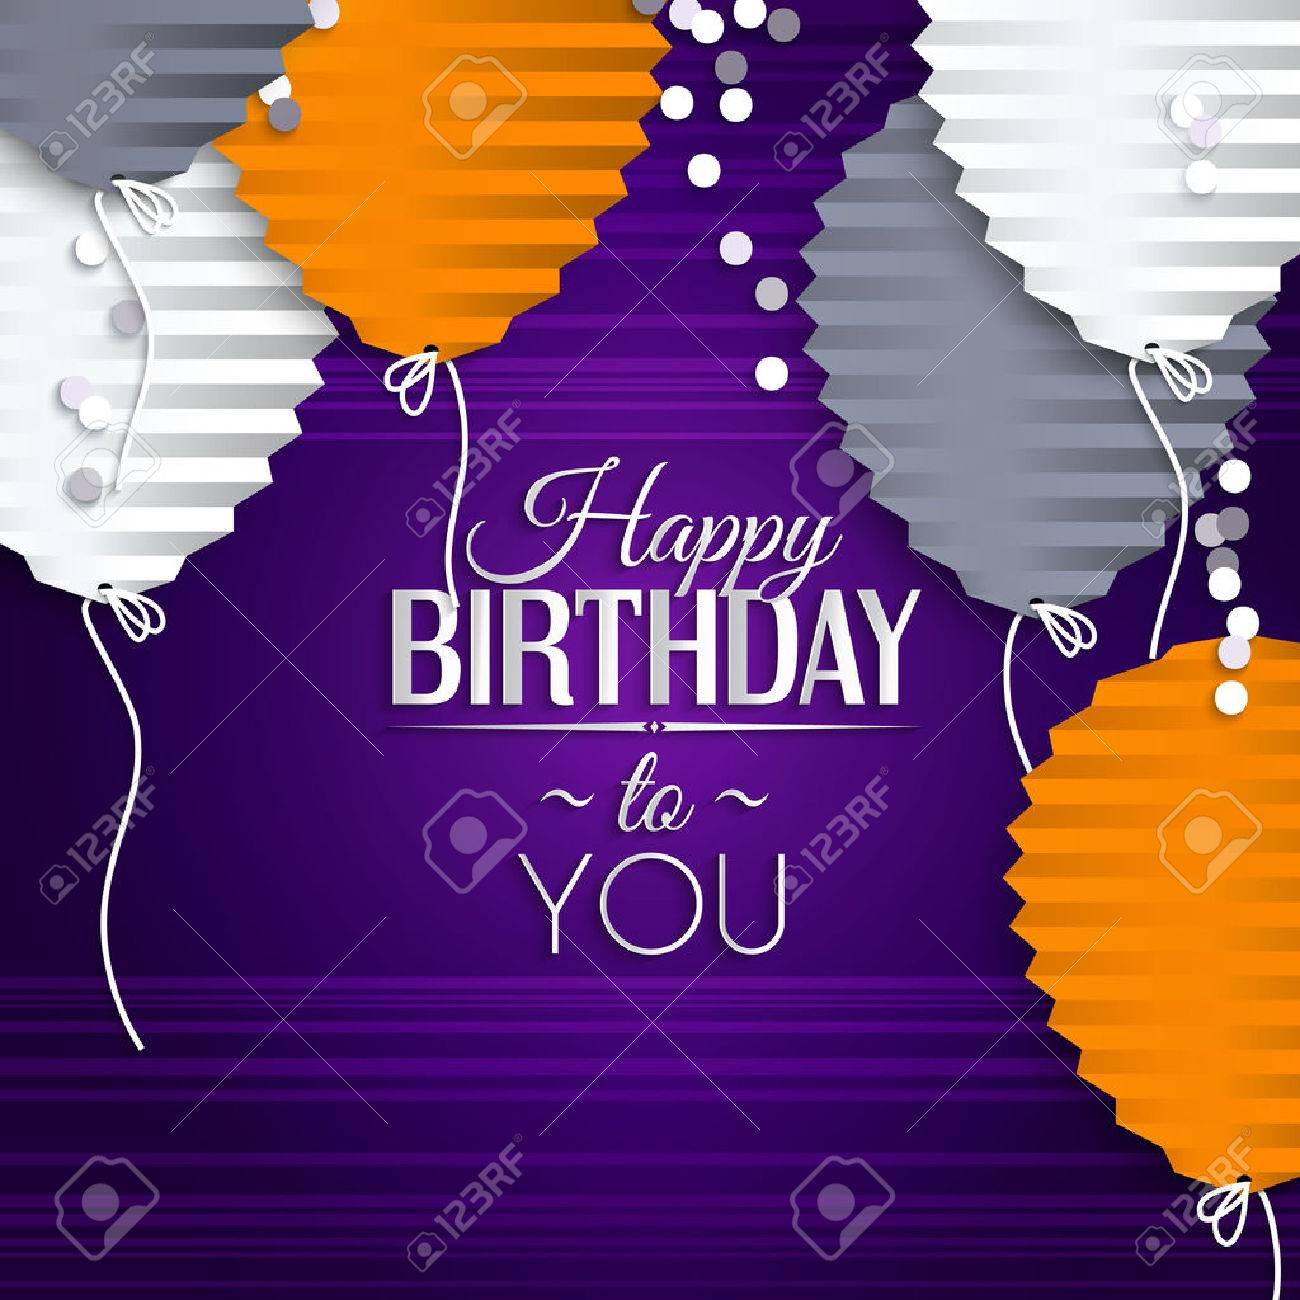 Birthday card with balloons in the style of flat folded paper. - 32561075